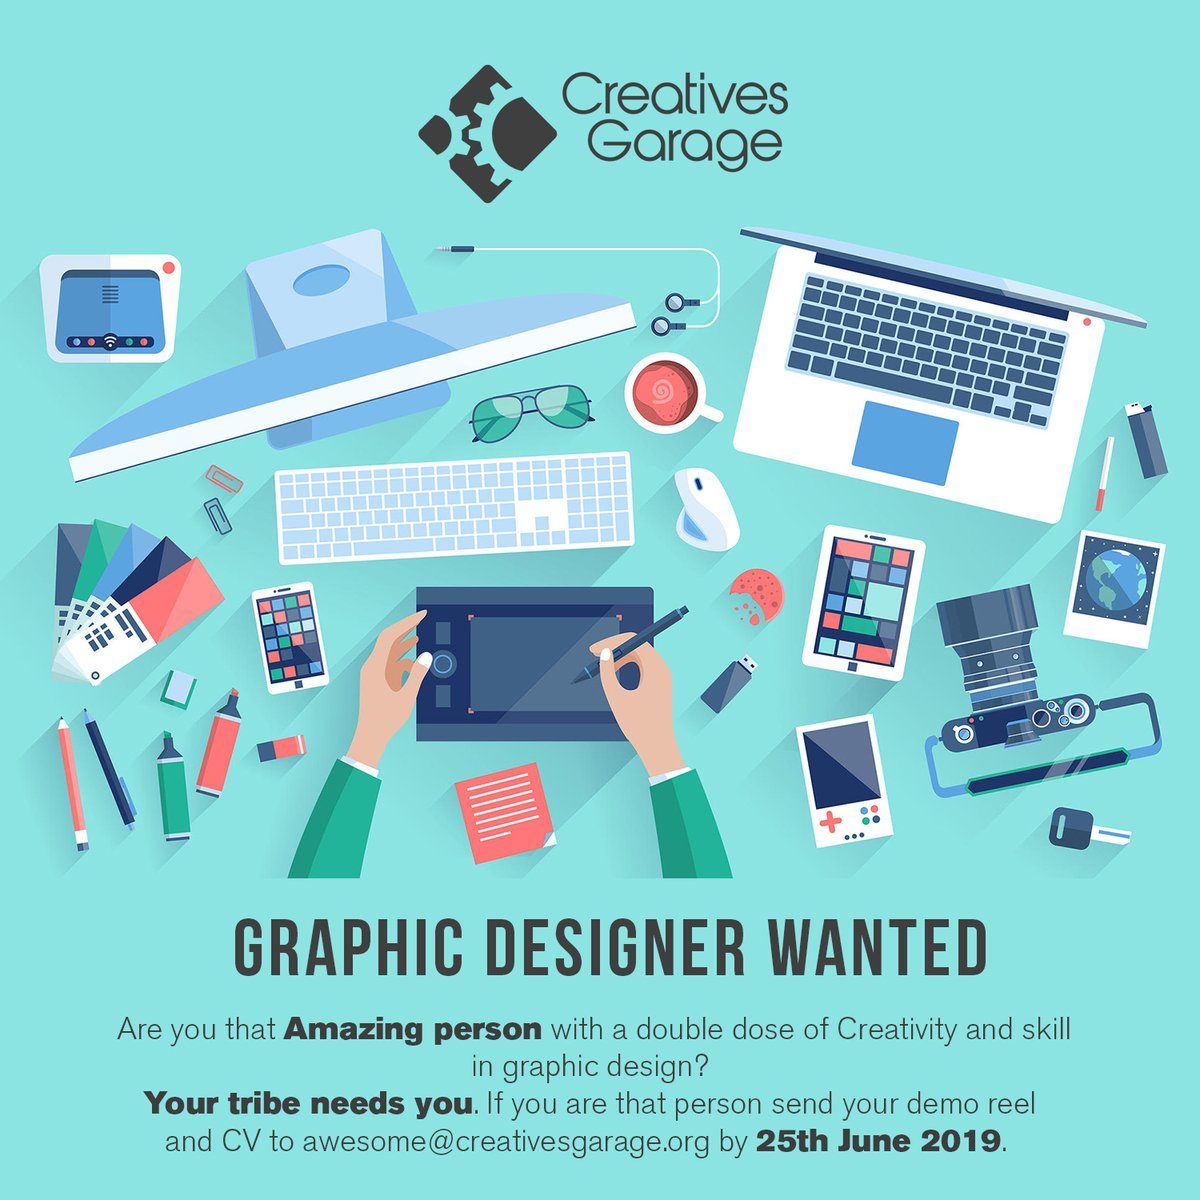 A Great Opportunity for Graphic Designers